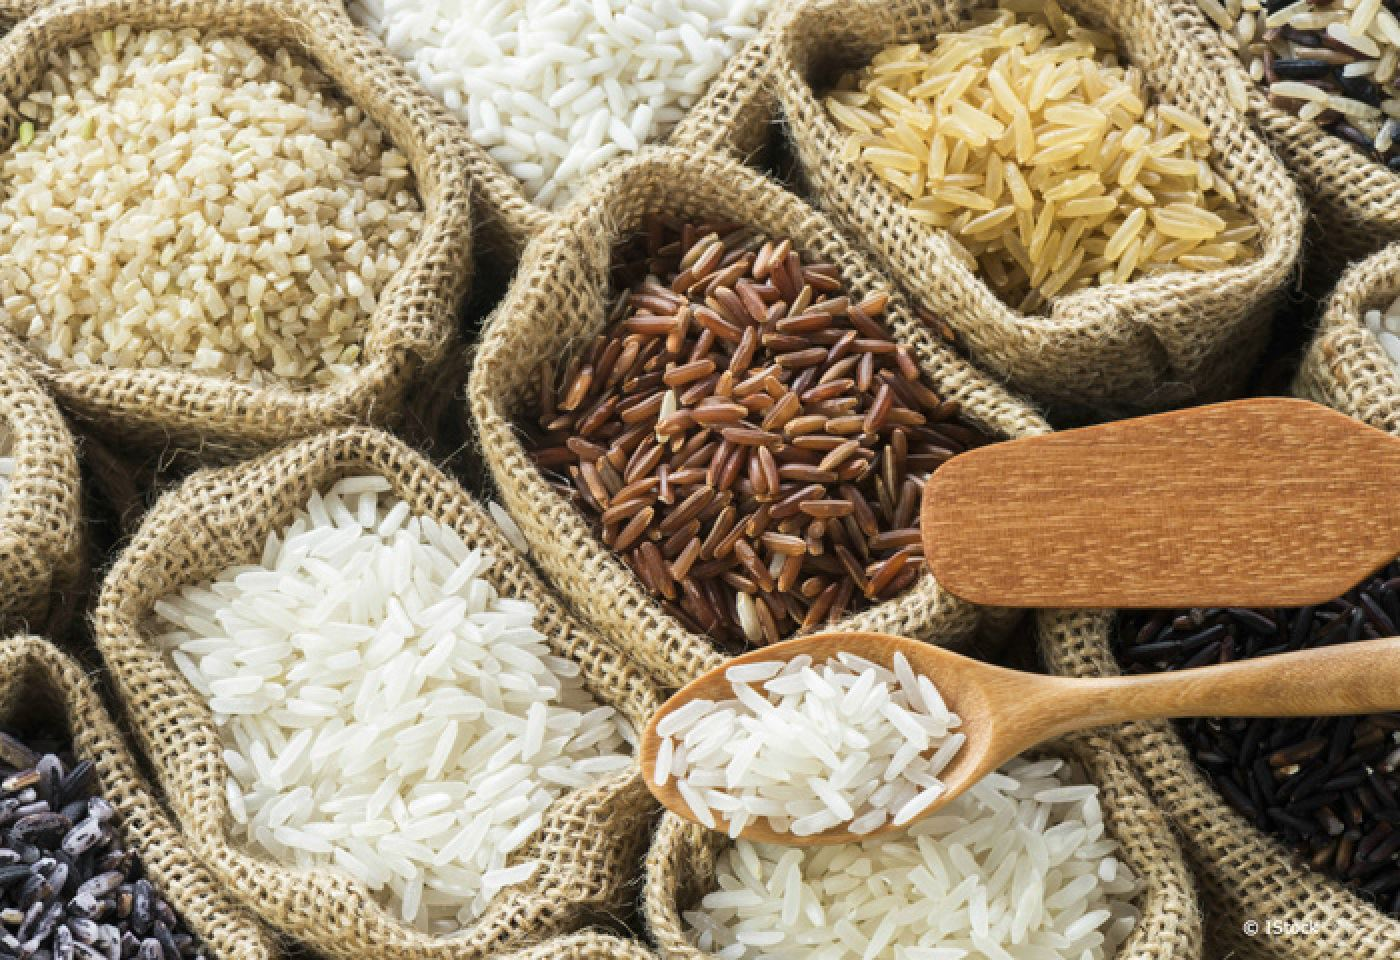 Azerbaijani scientists reveal connection between rice consumption, COVID-19 spread